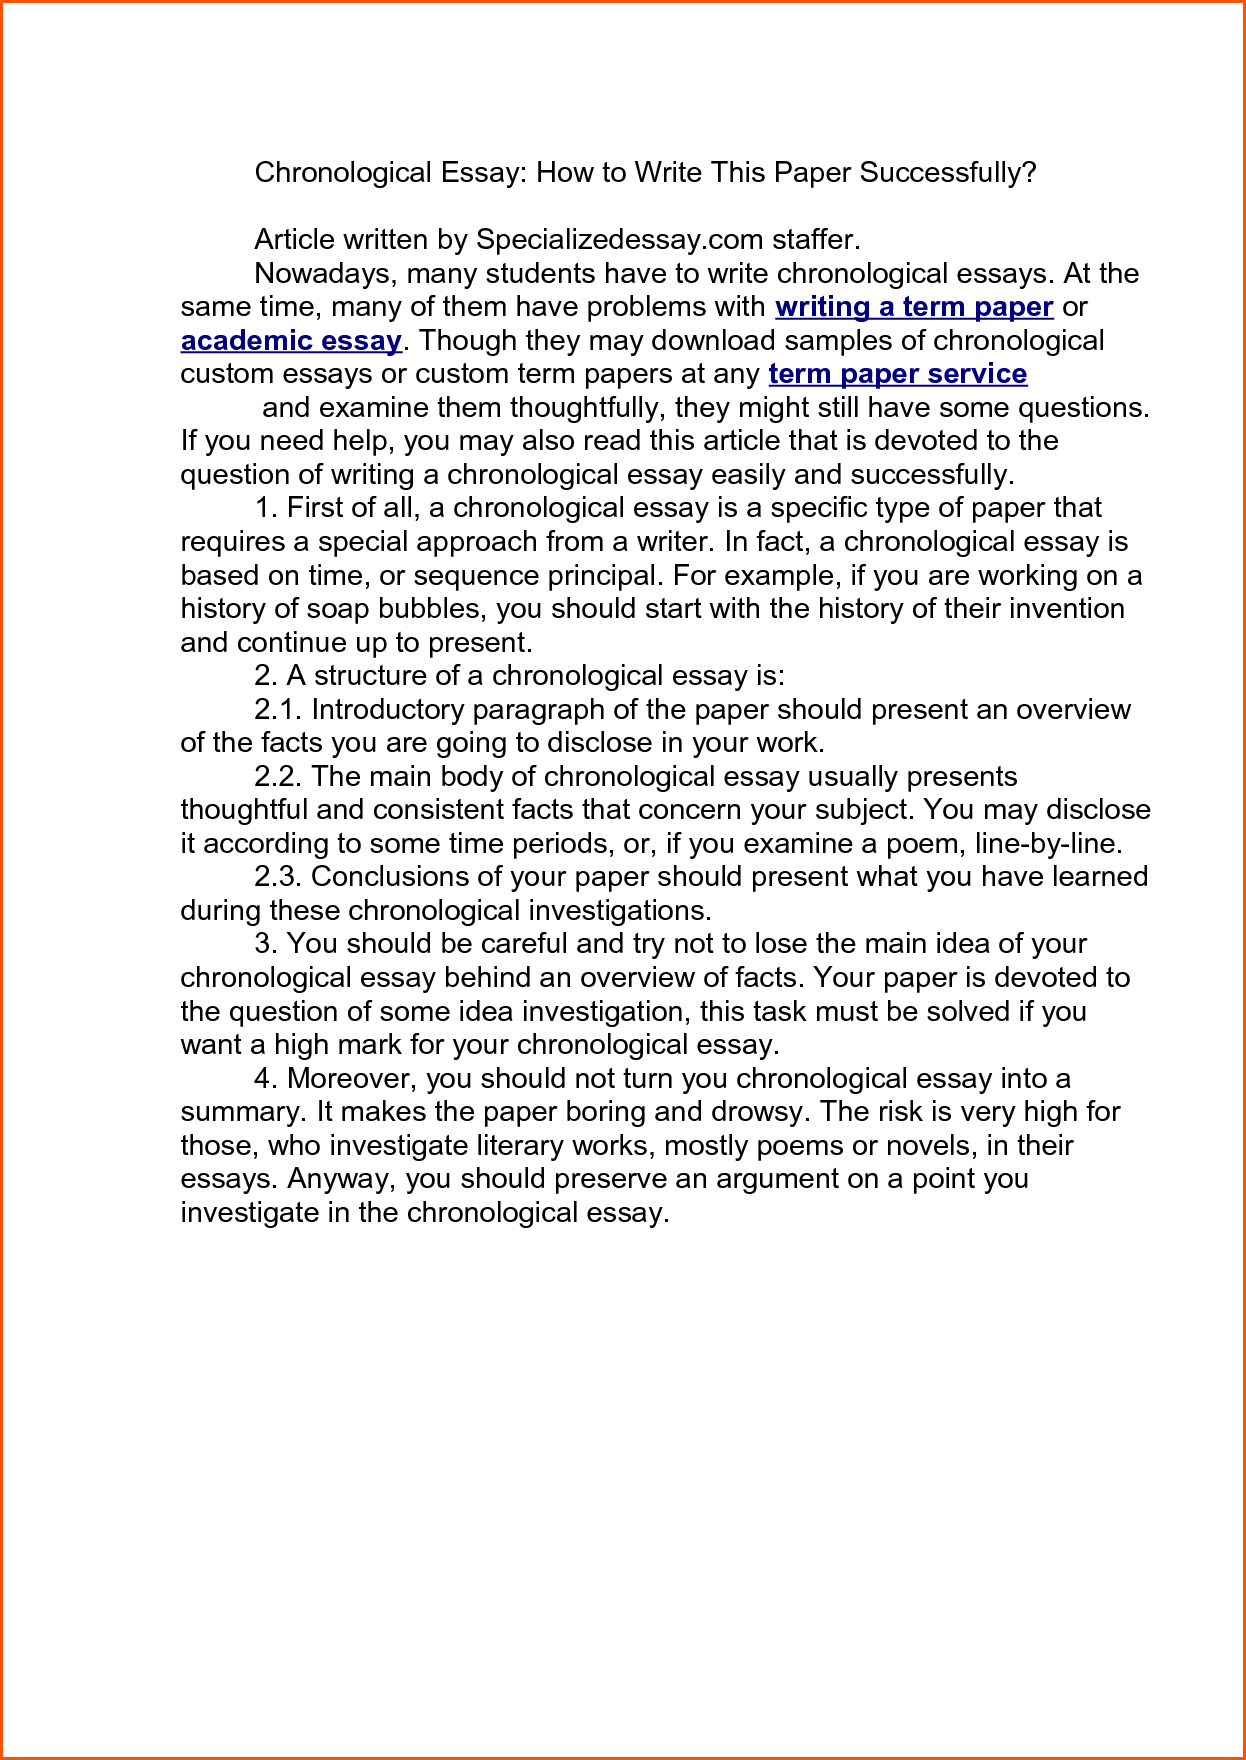 001 chronological order essay examples sample organization topics